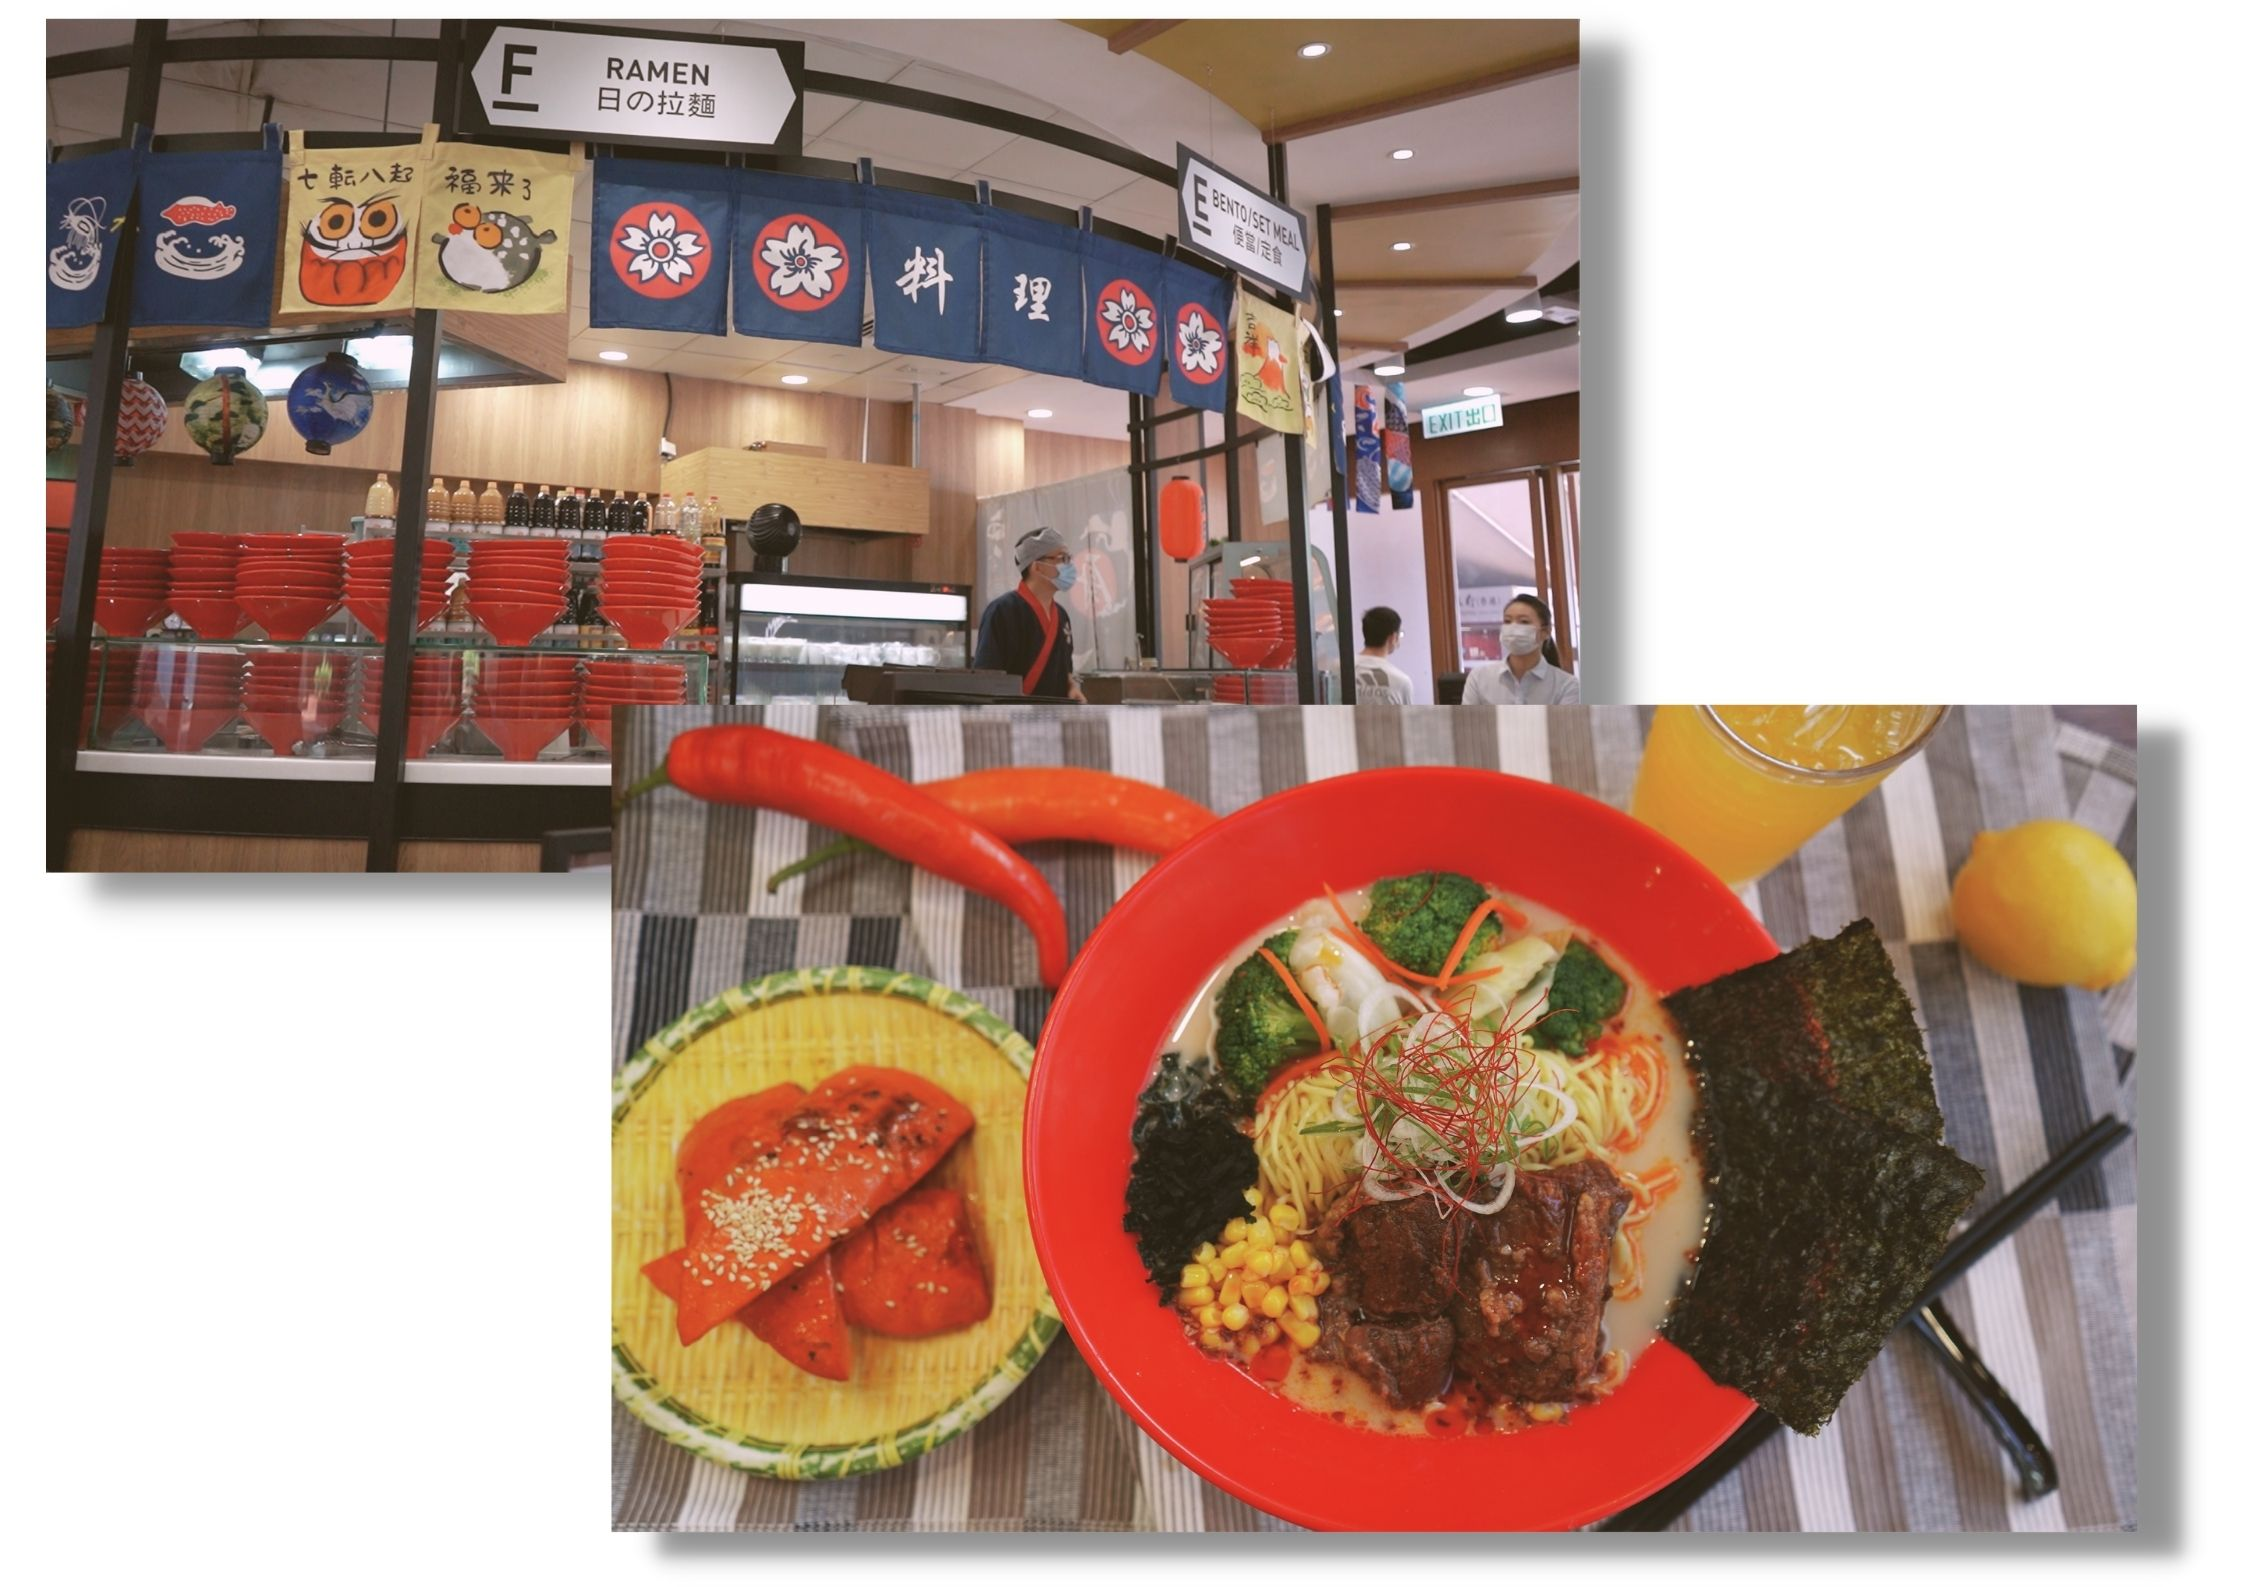 Union Restaurant Outlet and Food